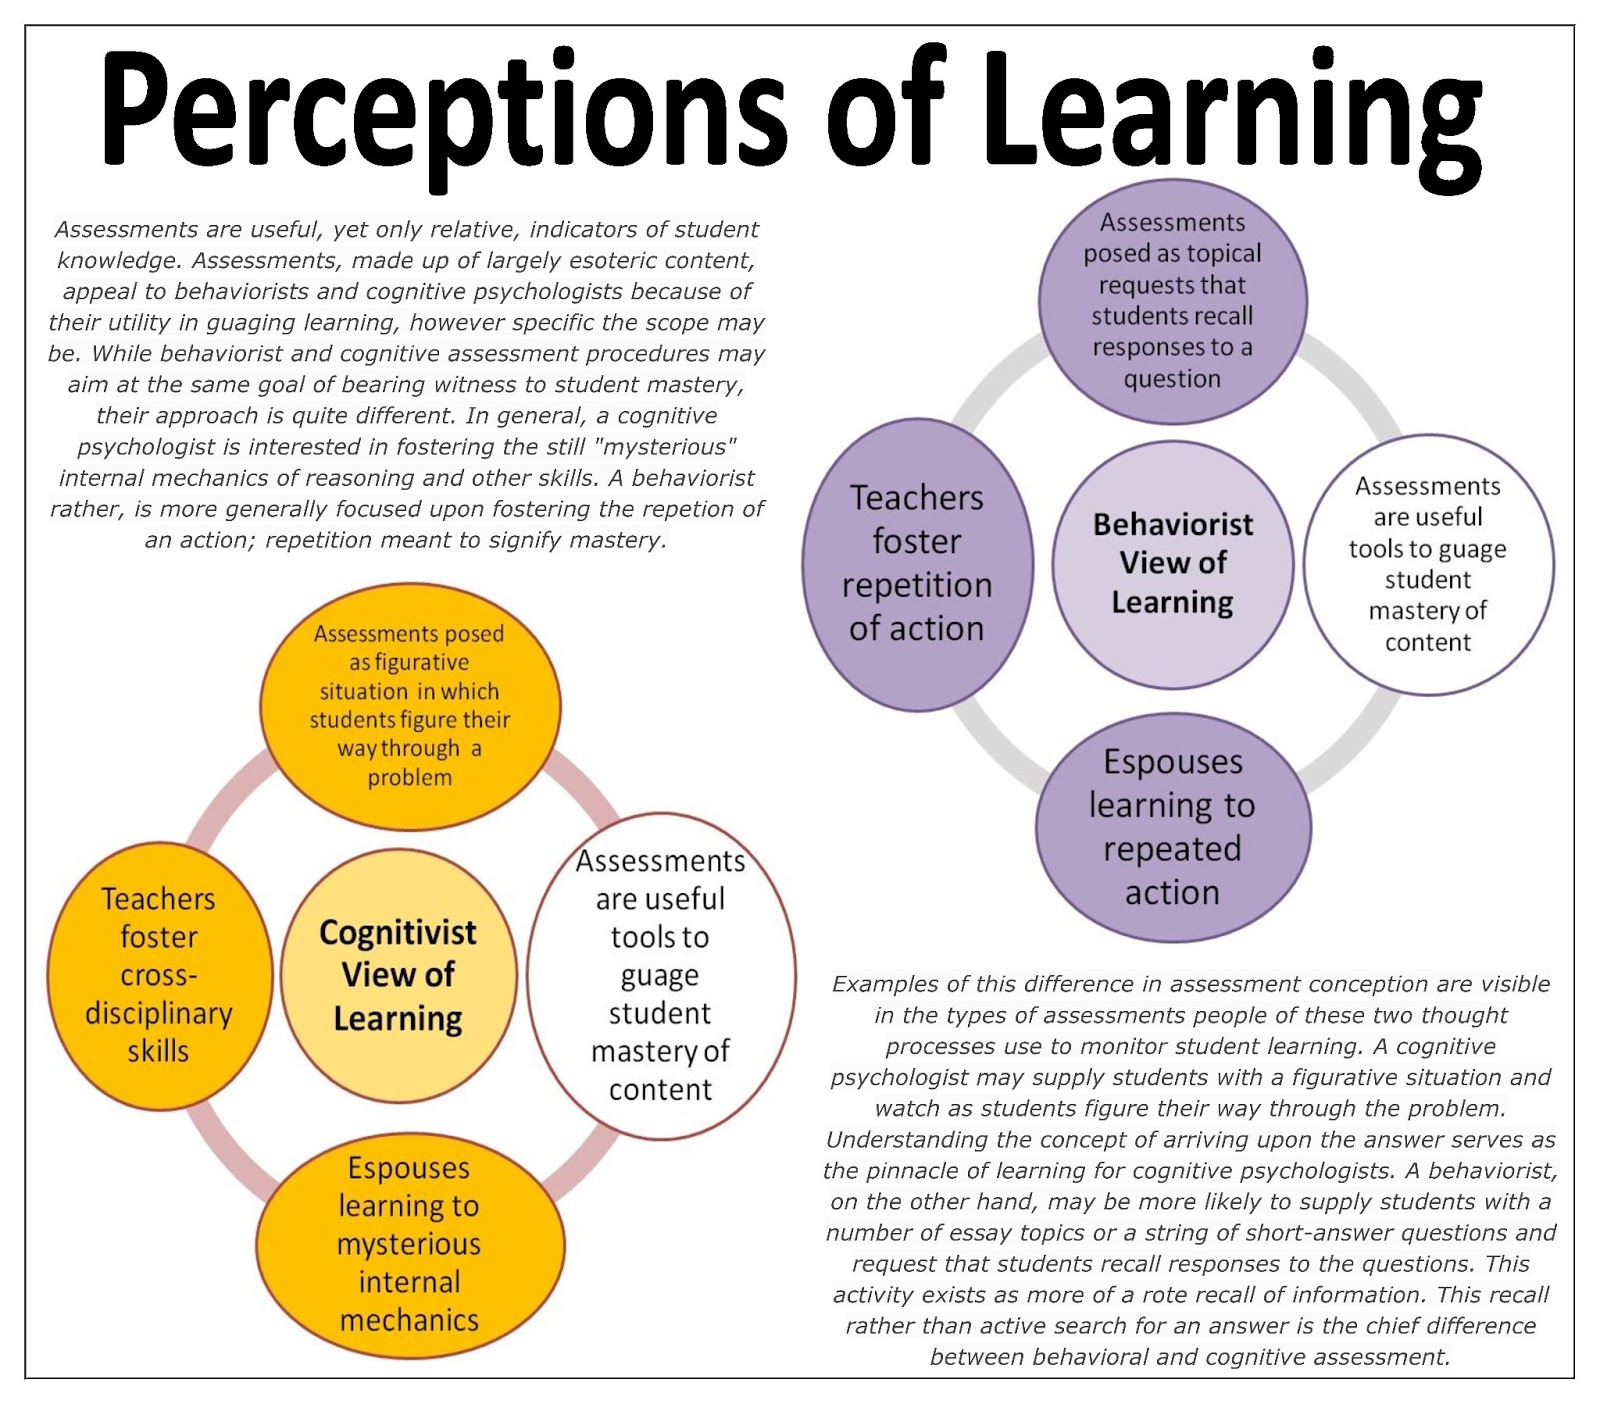 perceptions about groups An investigation into students' perceptions of group assignments yongmei bentley & shamim warwick, business school, university of bedfordshire the collection of student feedback is a central strategy to monitor the effectiveness of teaching and learning at educational institutions (meyer, 2010.